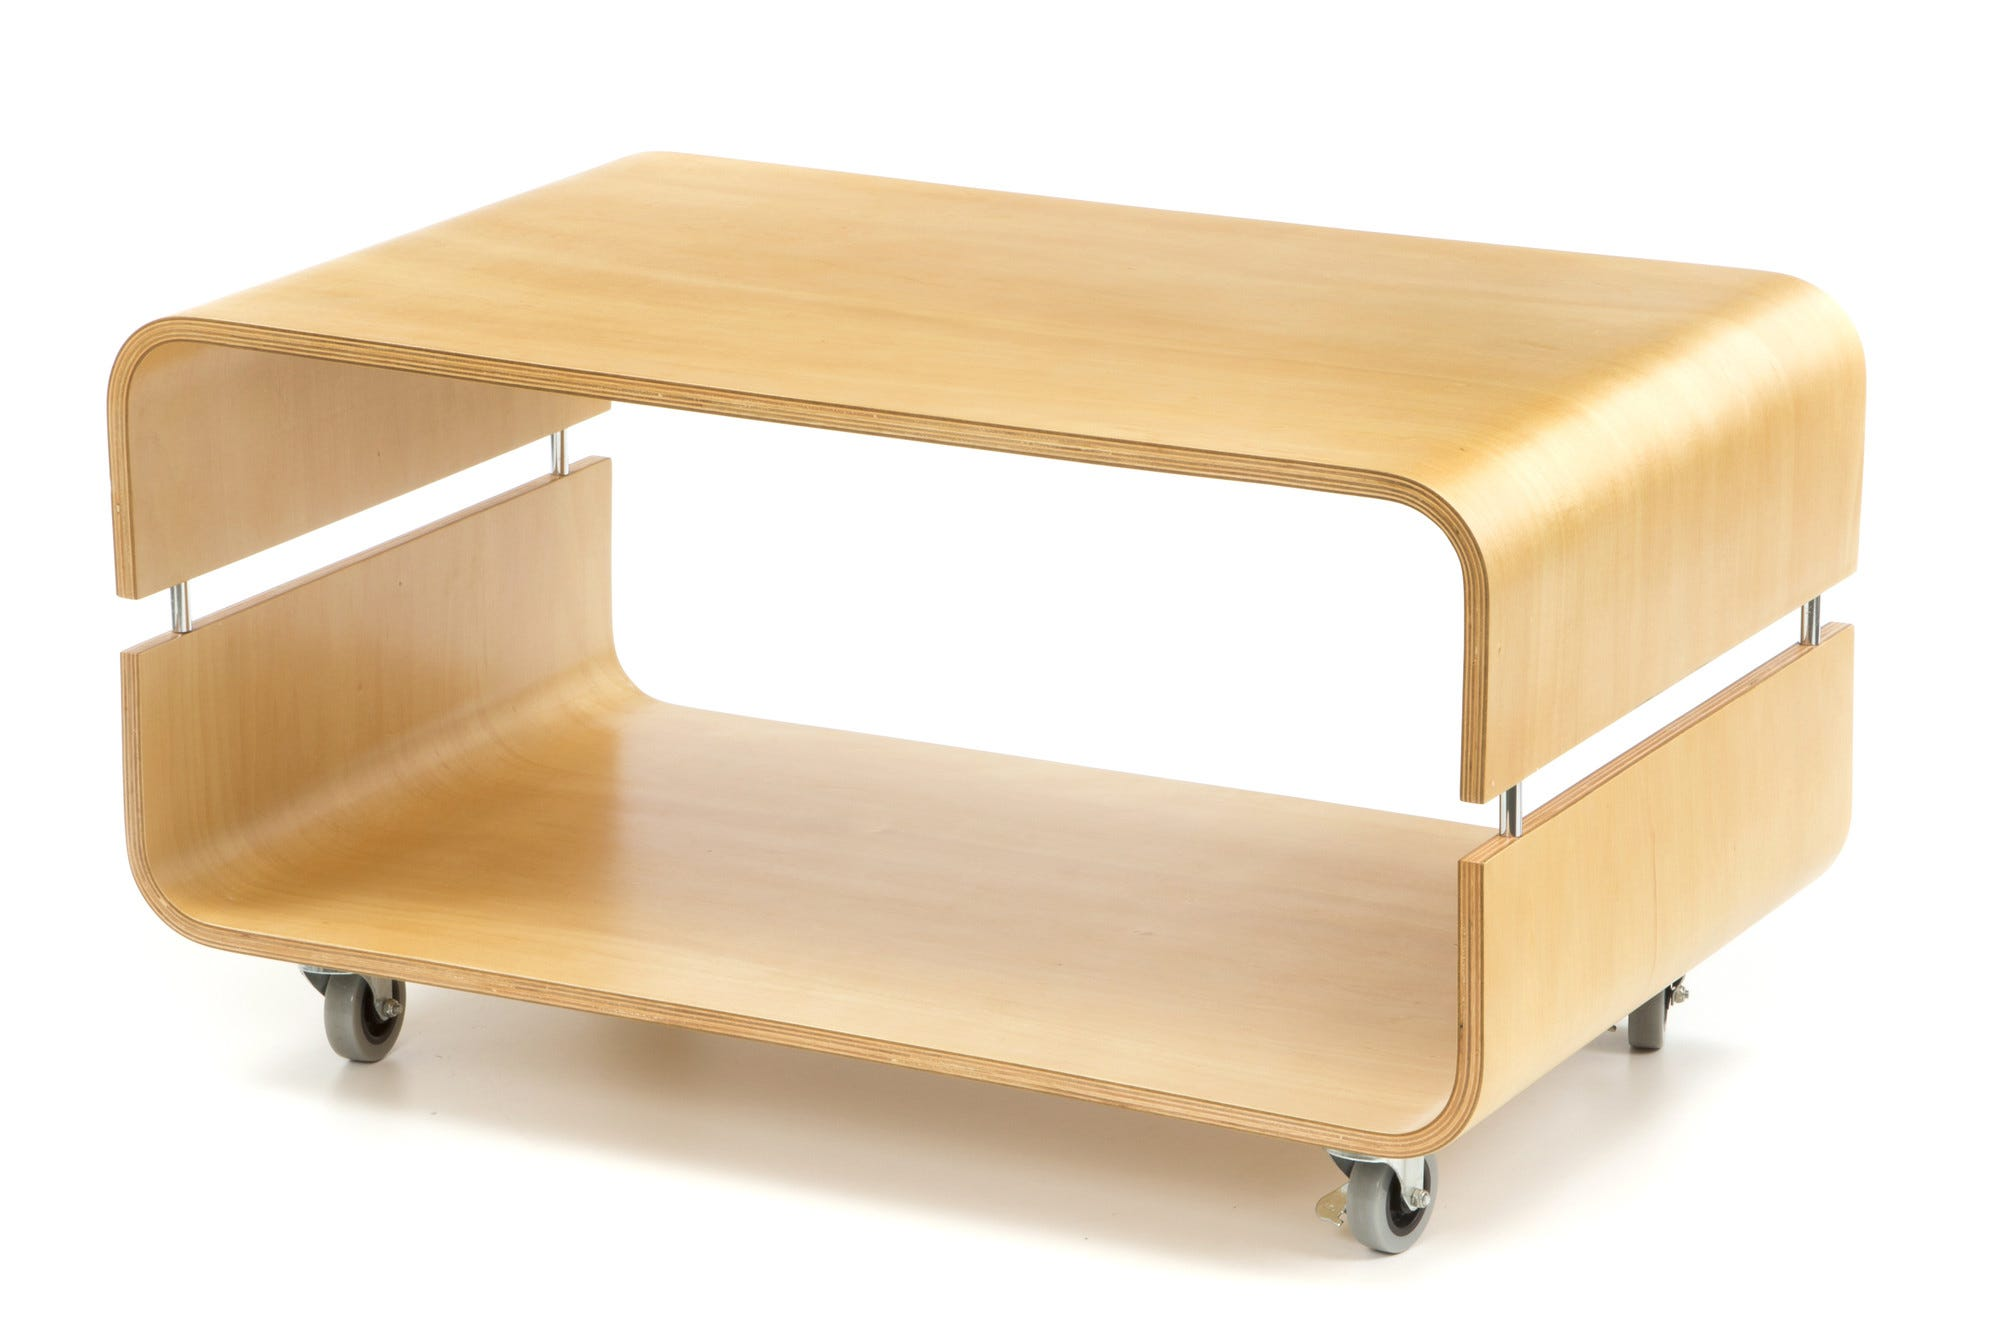 Peachy Contour Rolling Coffee Table Ibusinesslaw Wood Chair Design Ideas Ibusinesslaworg